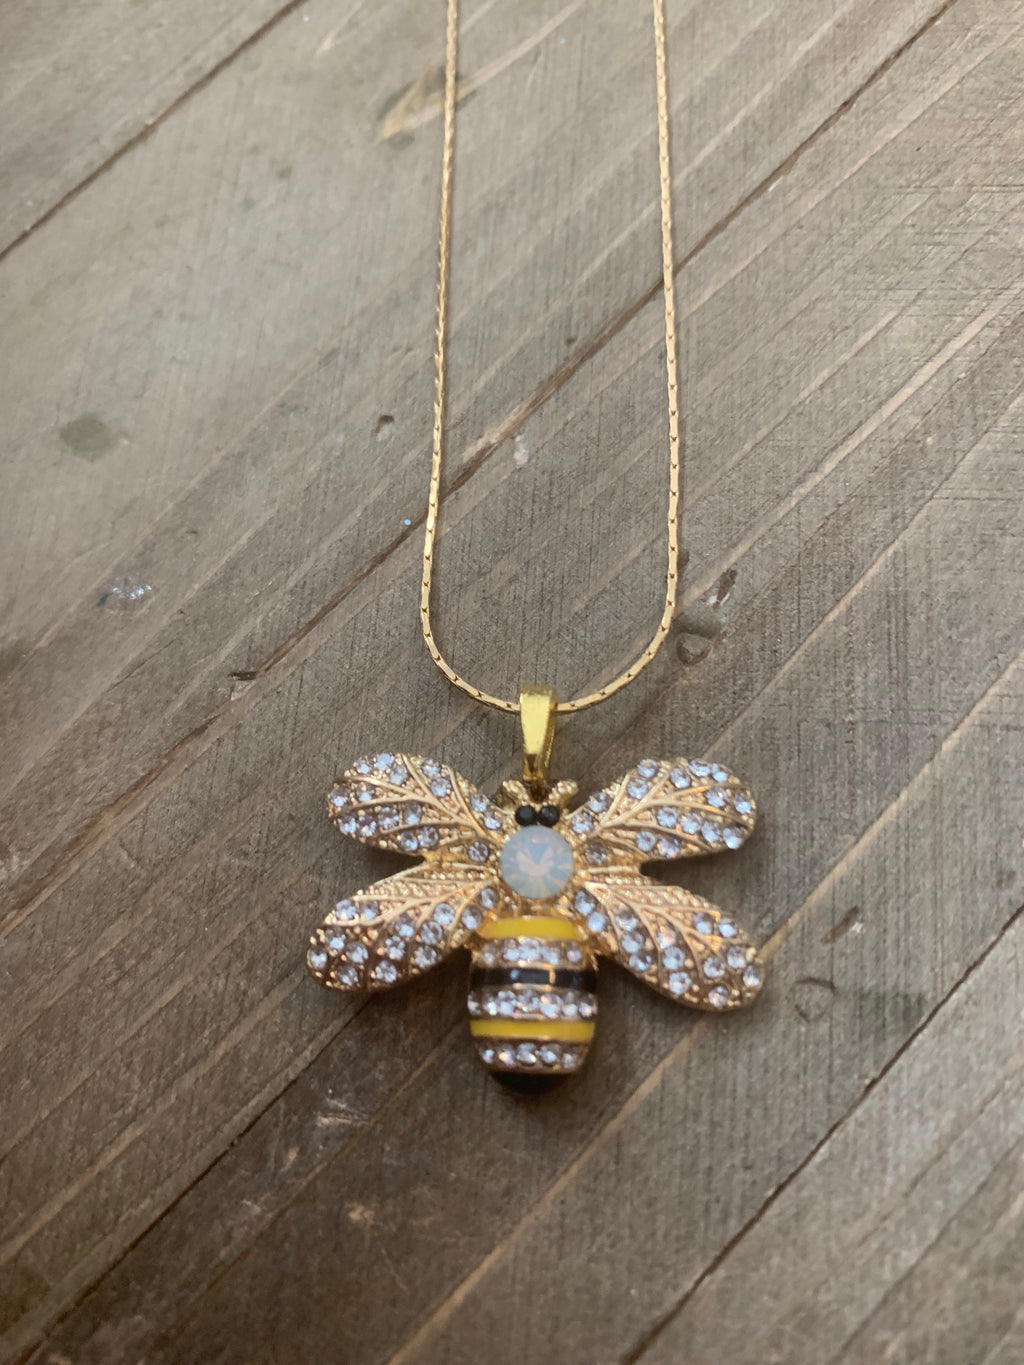 Dainty Gold chain necklace a charming bumblebee pendant